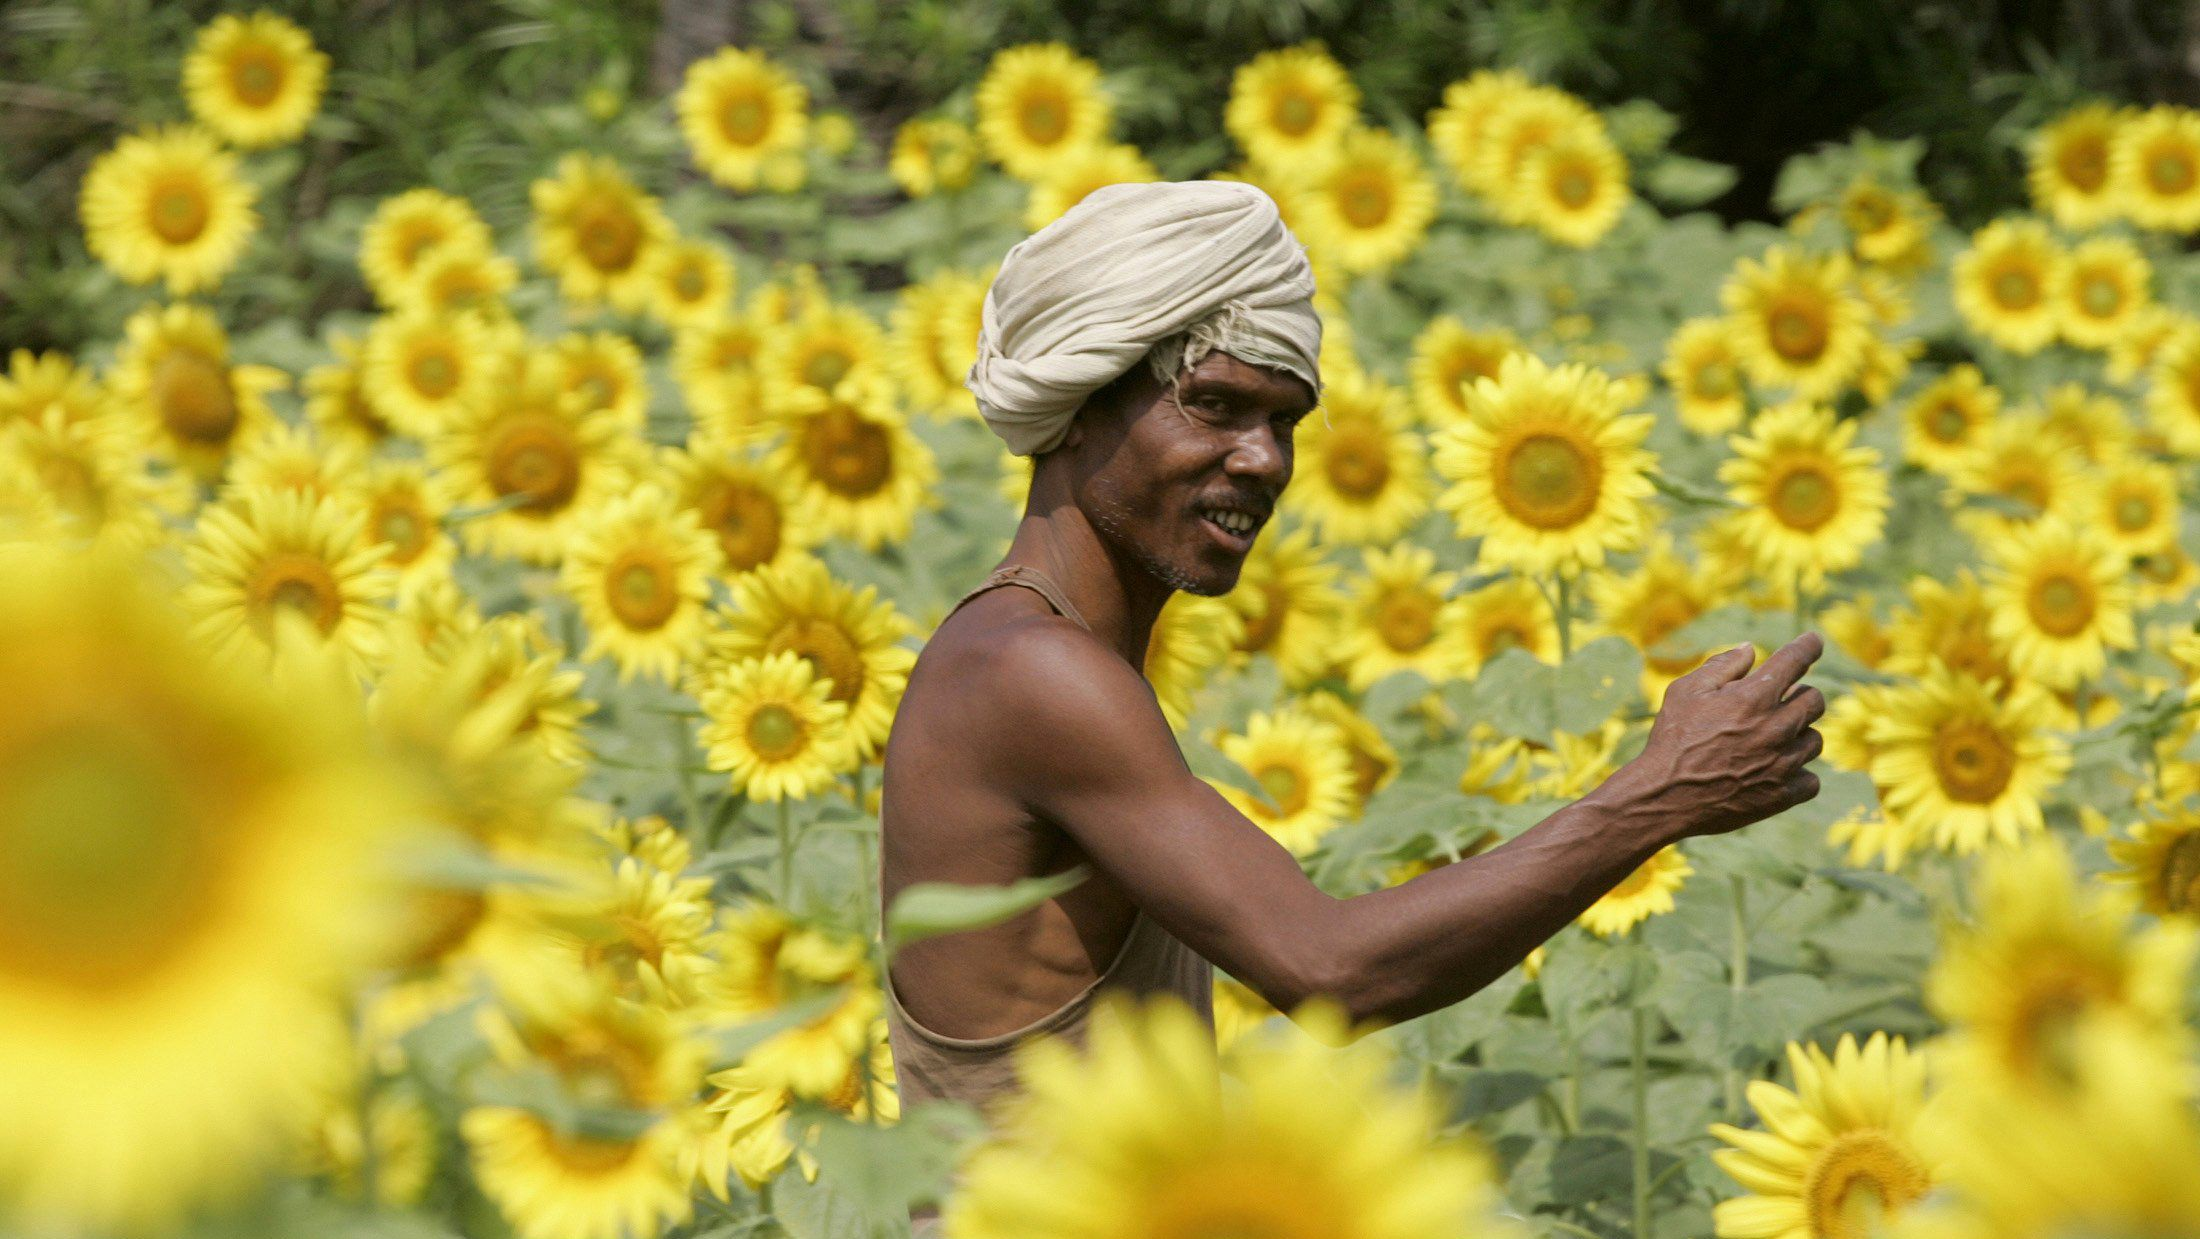 A farmer works in a sunflower field in Khatihari village, about 95 km (59 miles) east from the eastern Indian city of Bhubaneswar